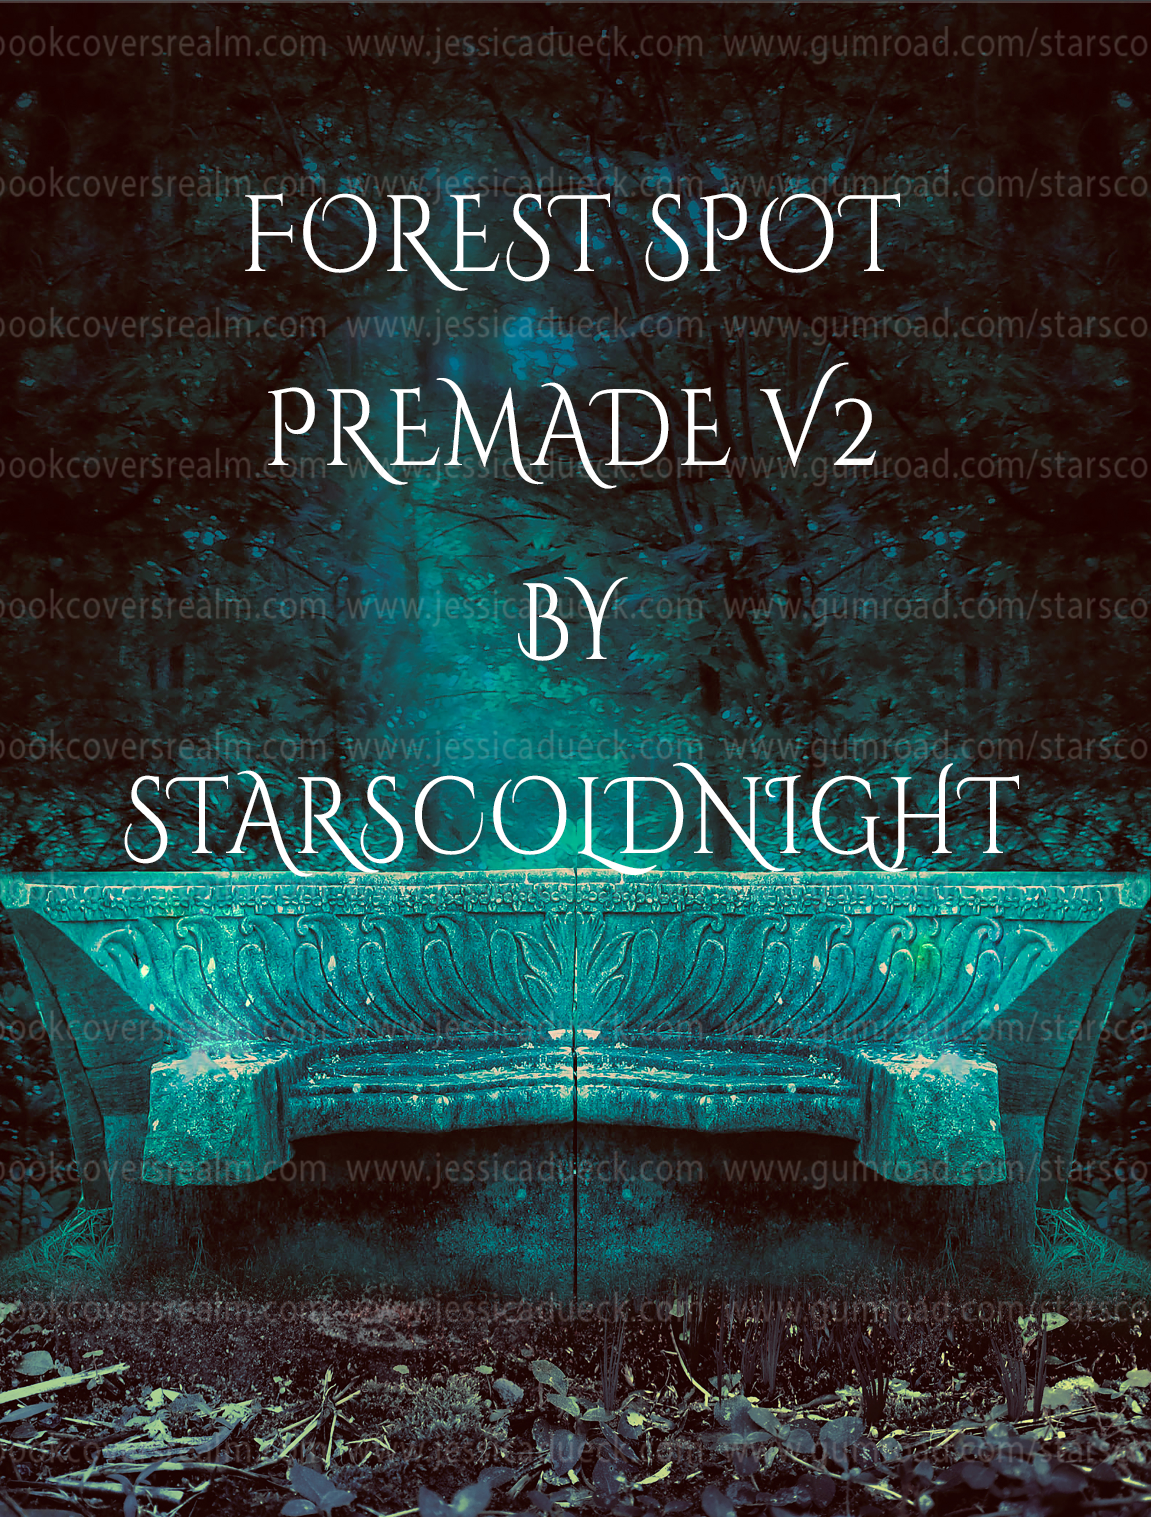 Forest spot premade v2 by starscoldnight